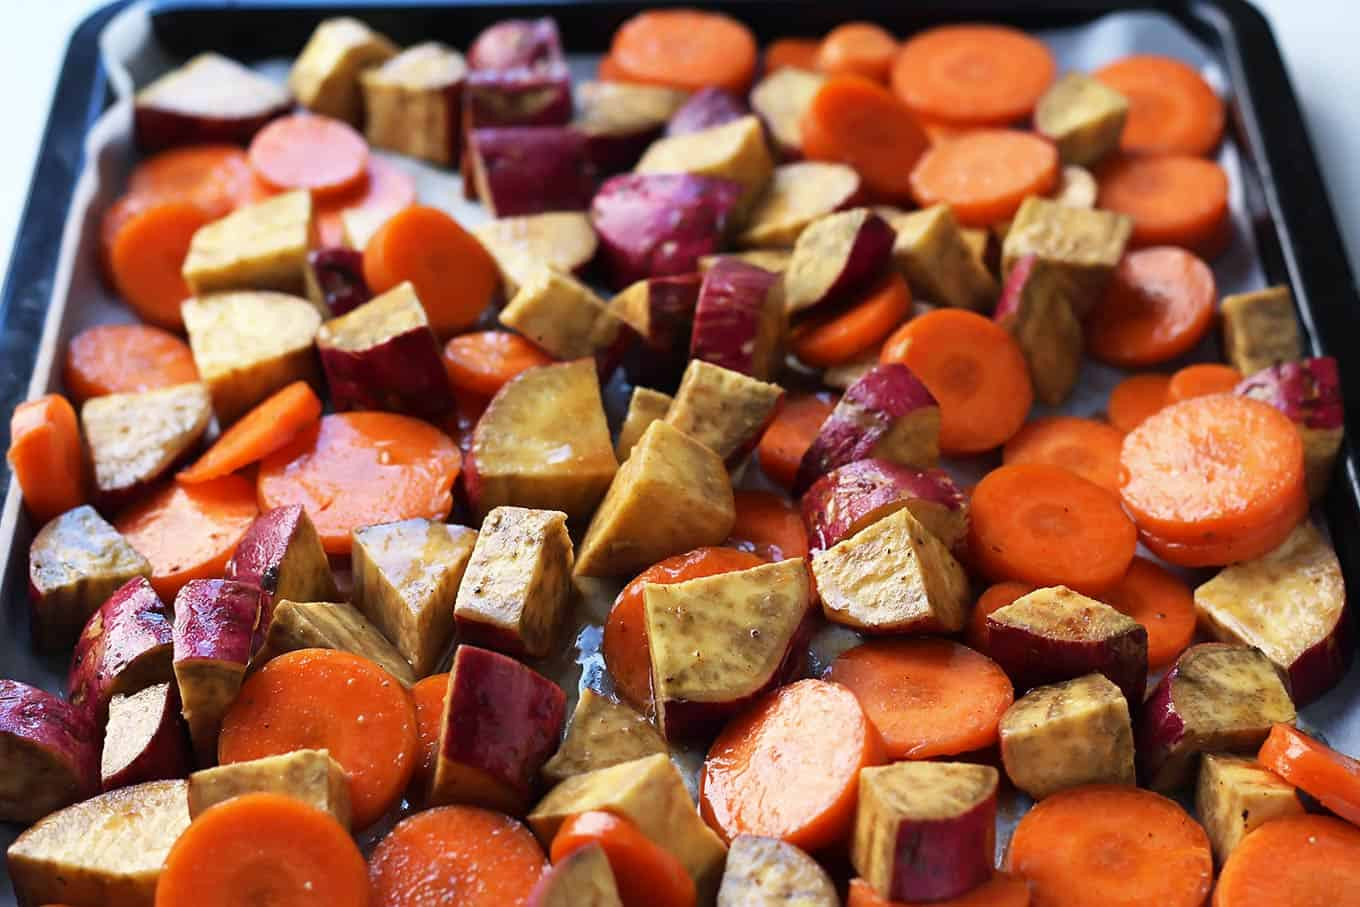 Roasted Sweet Potatoes And Carrots  roasted carrots and potatoes